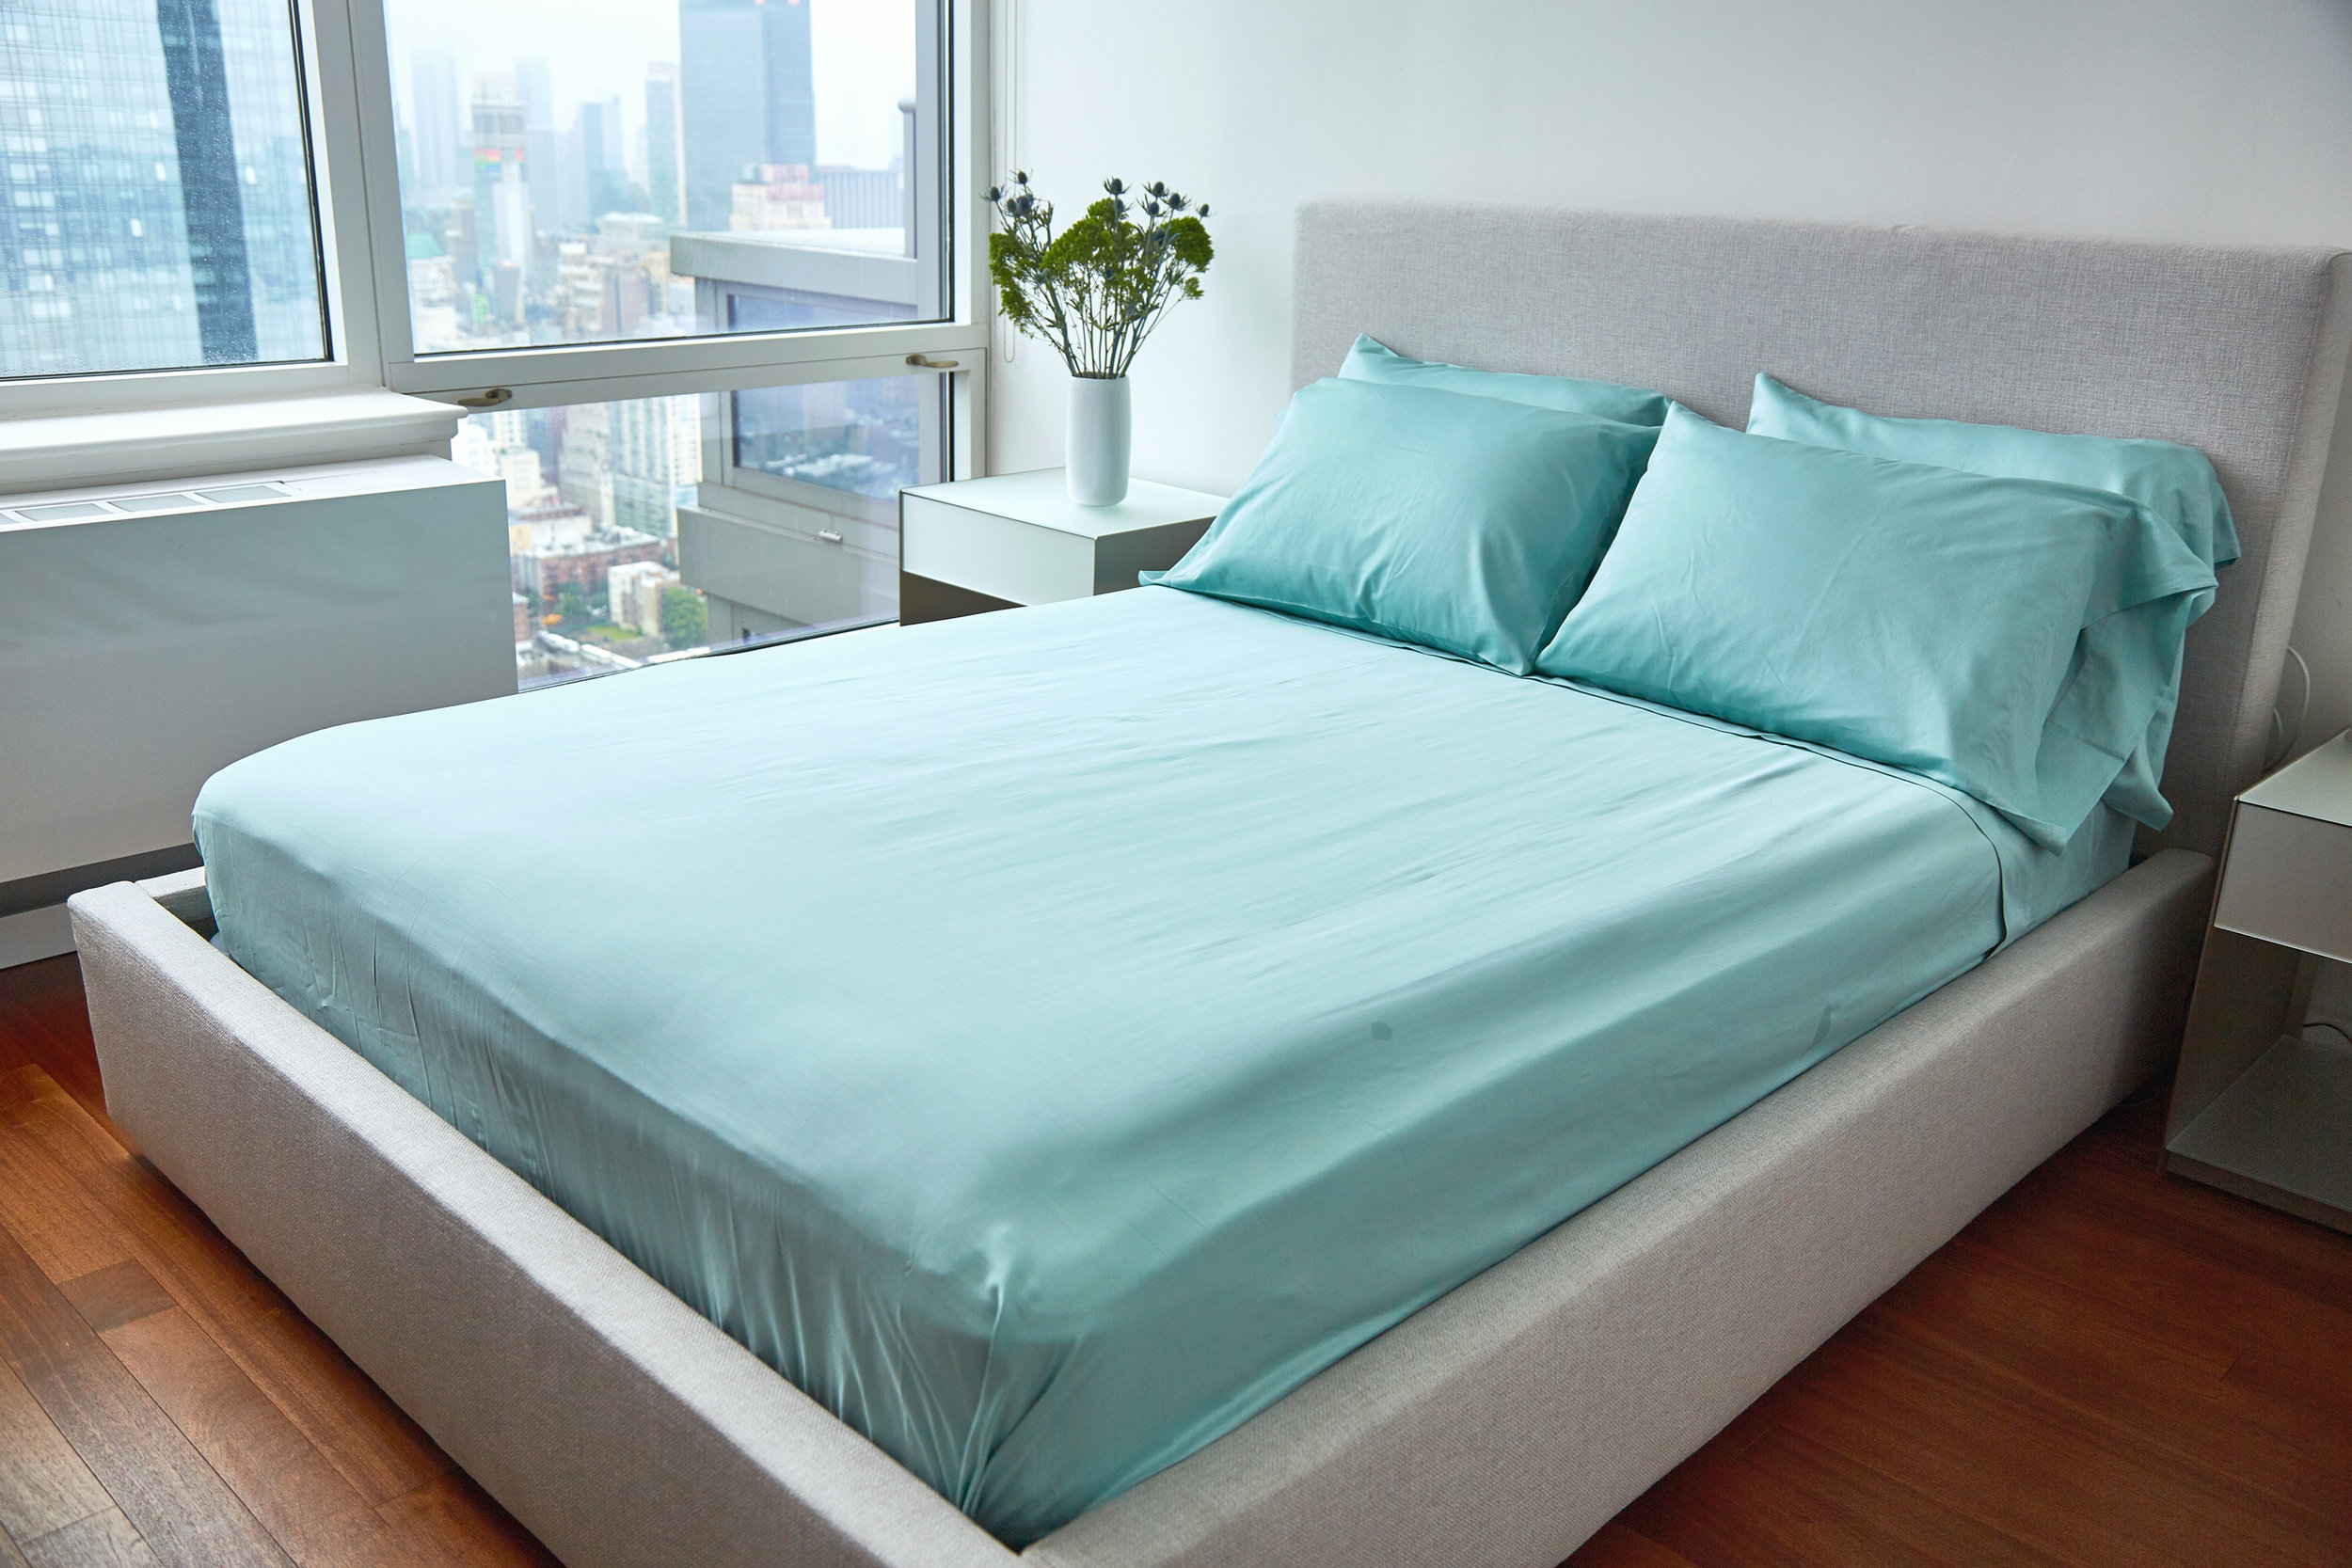 UN_FARM_TO_HOME_BED_SHEETS_SEA_GLASS1118_XRET.jpg